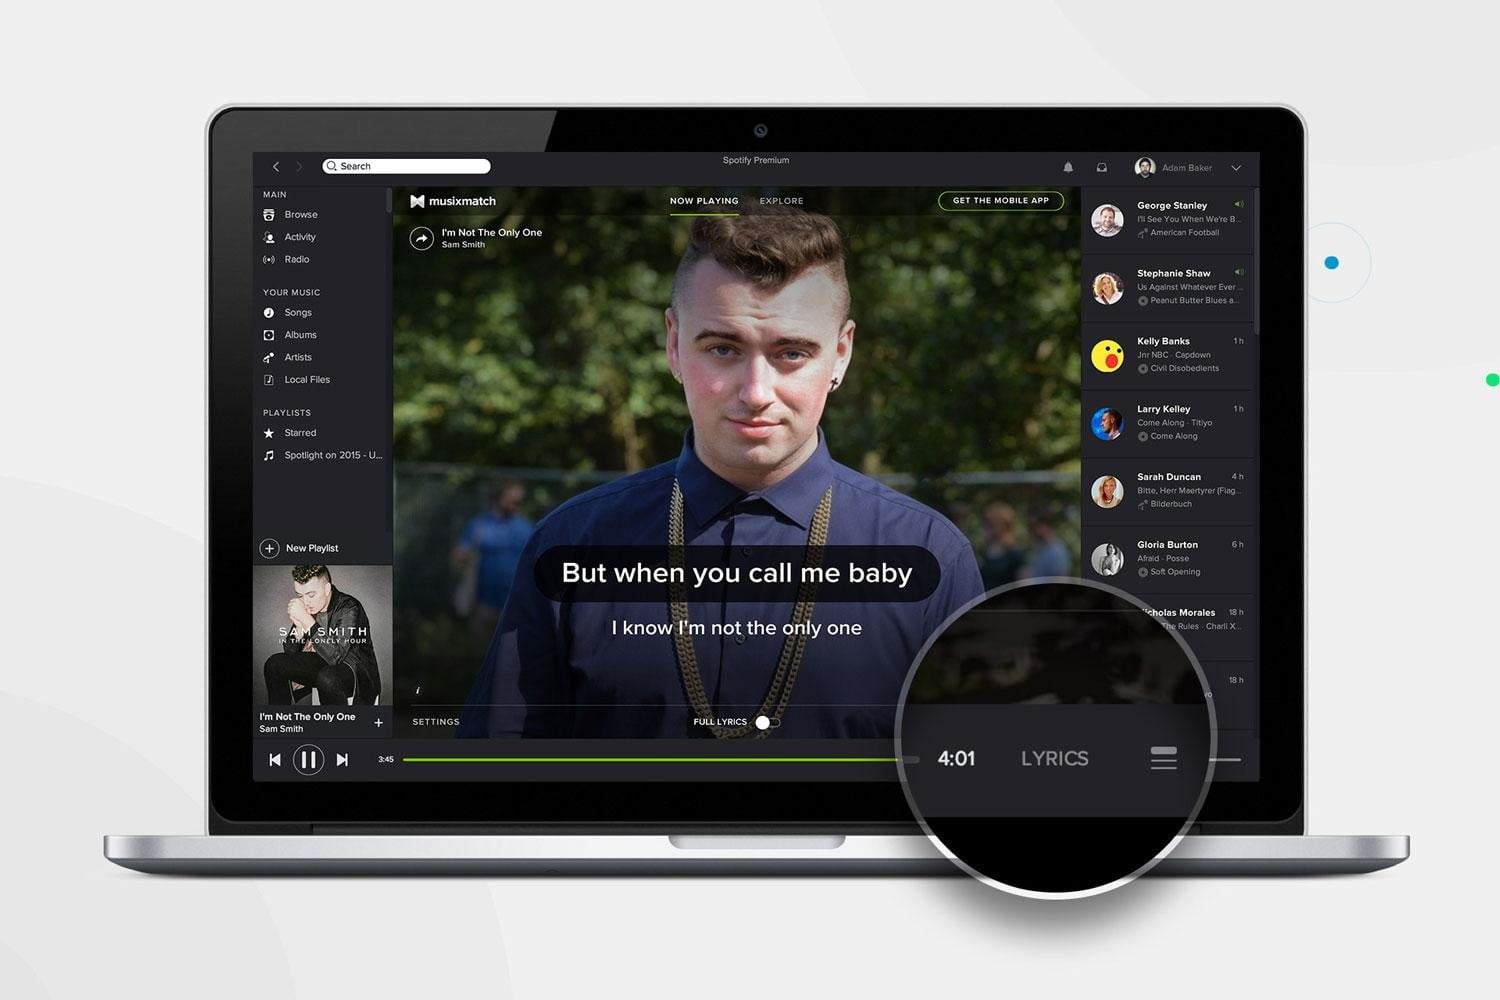 spotify adds lyrics to desktop app so you can annoy the hell out of everyone nearby samsmith edit press image